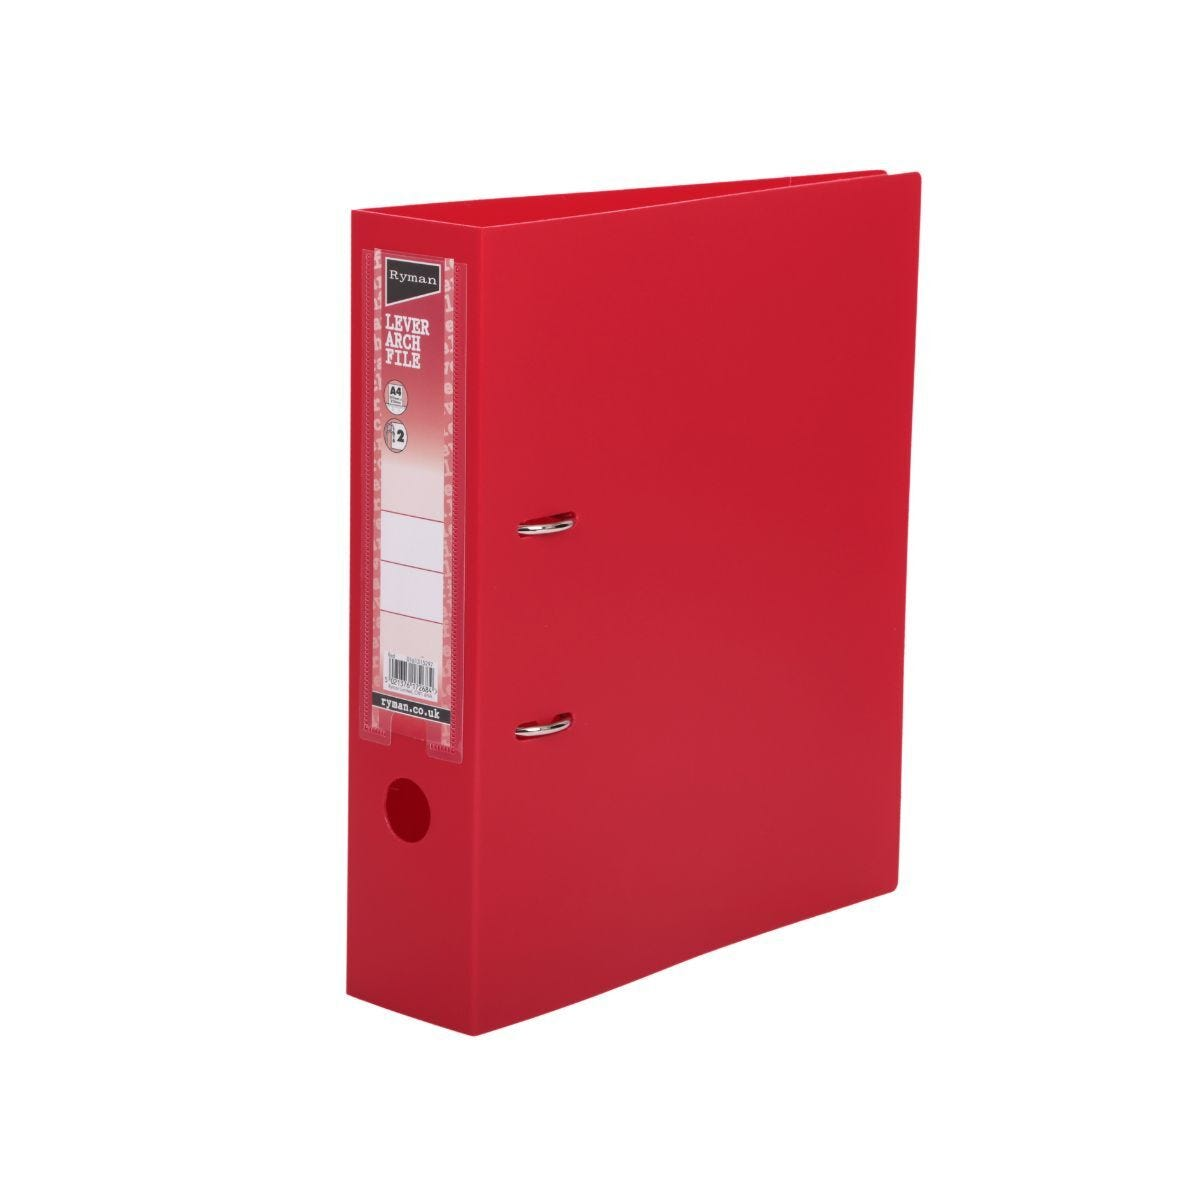 Ryman Lever Arch File A4 Red